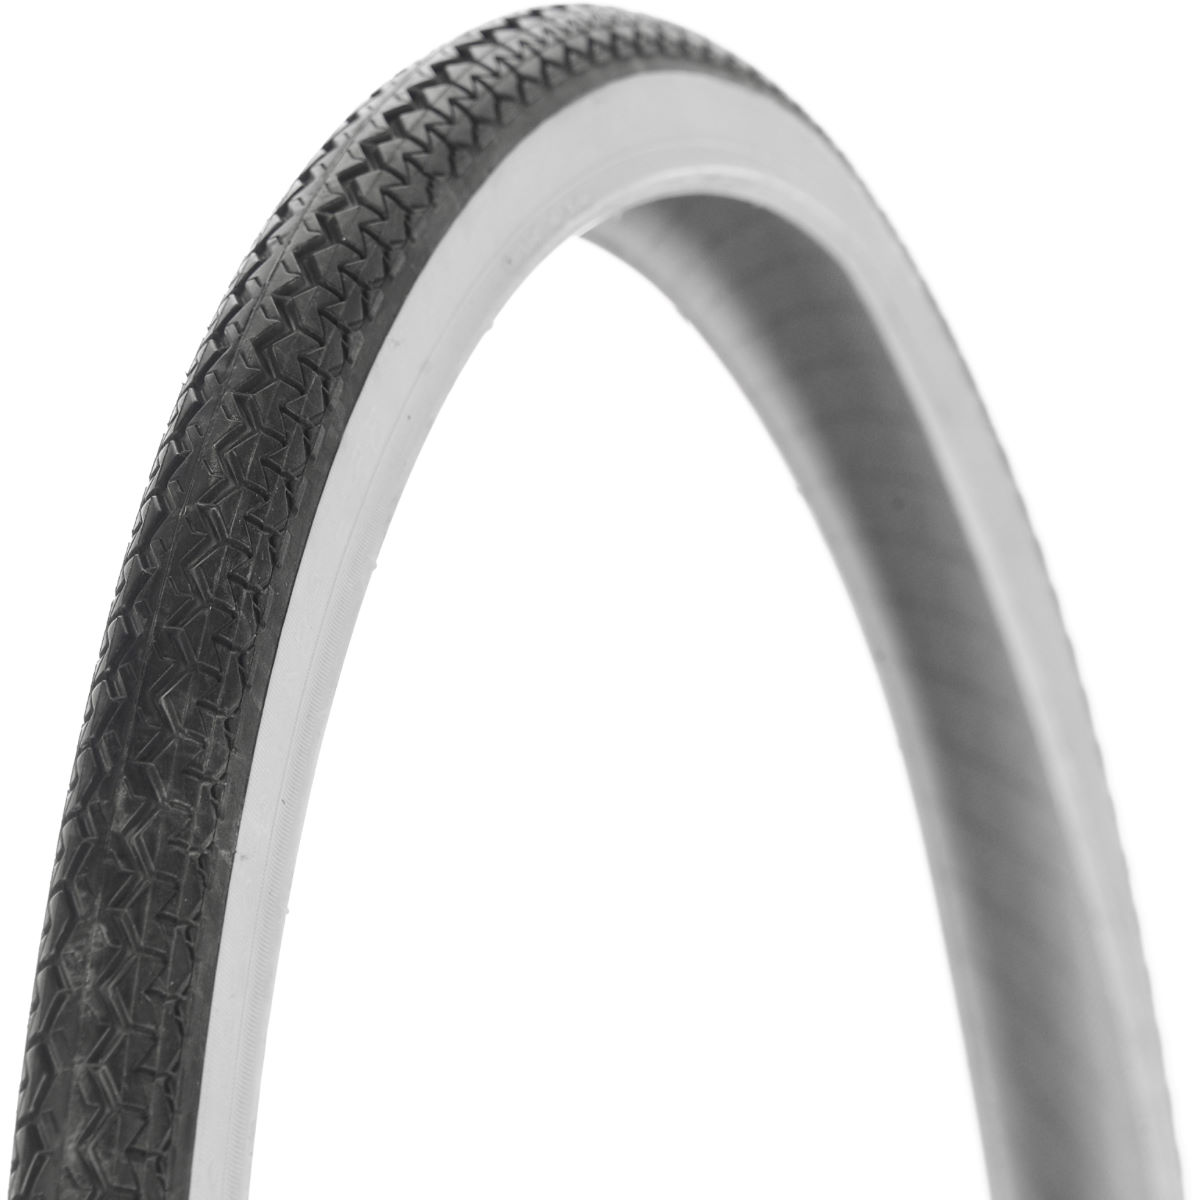 Image of Pneu Michelin World Tour Bike - 650b 35b Wire Bead Black - White